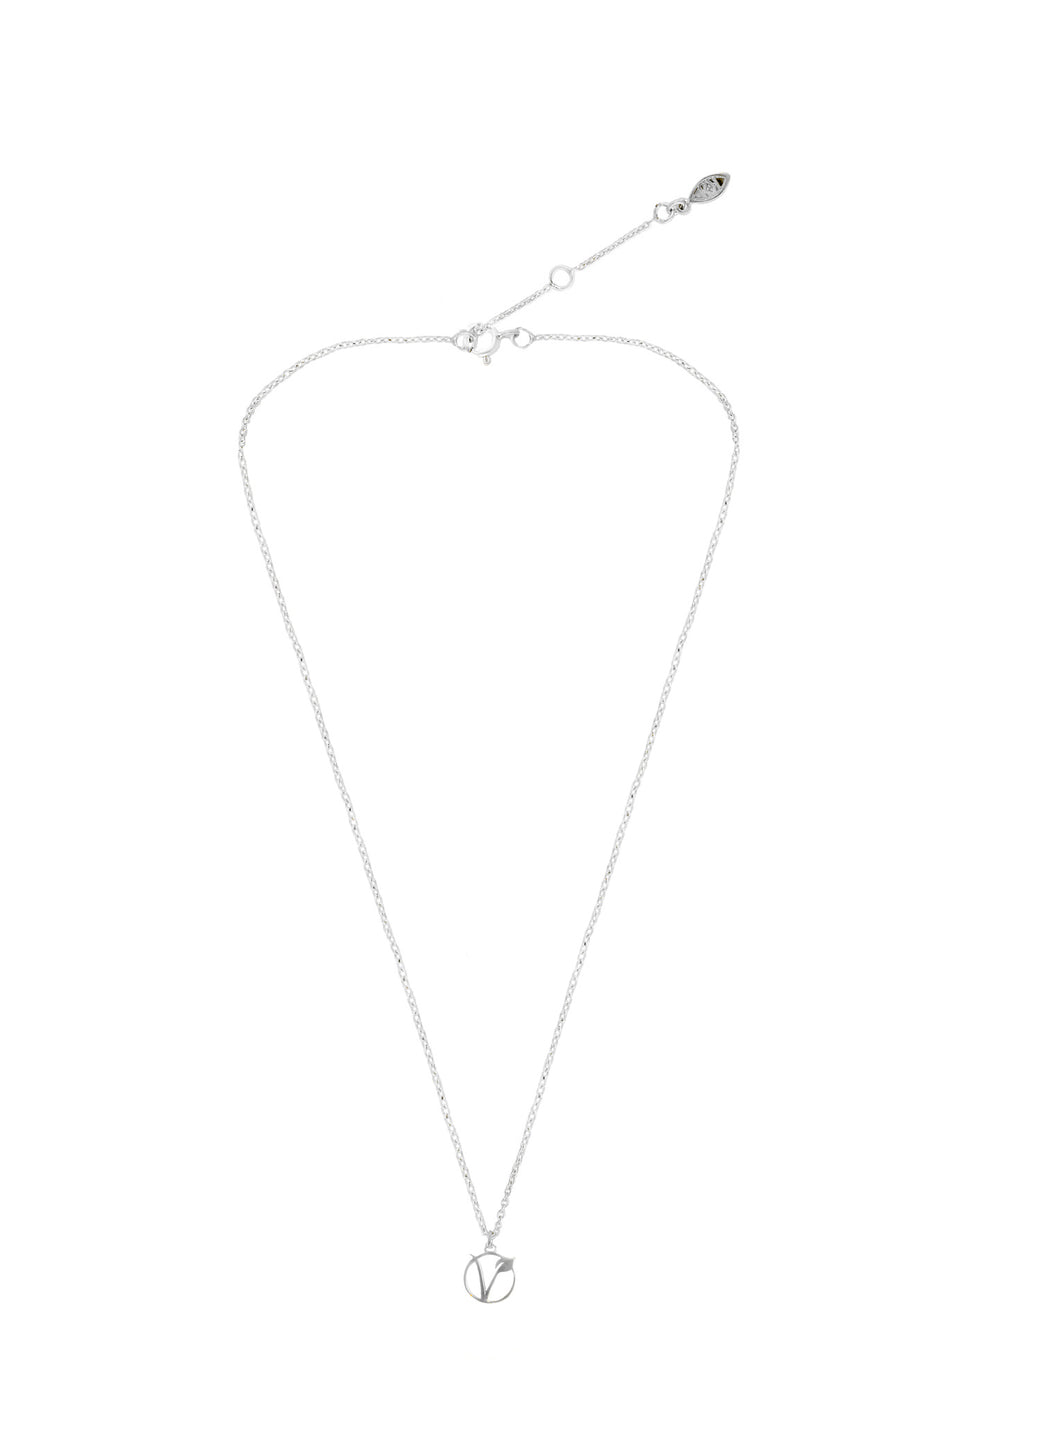 Simplicity Vegan sign silver 925 necklace